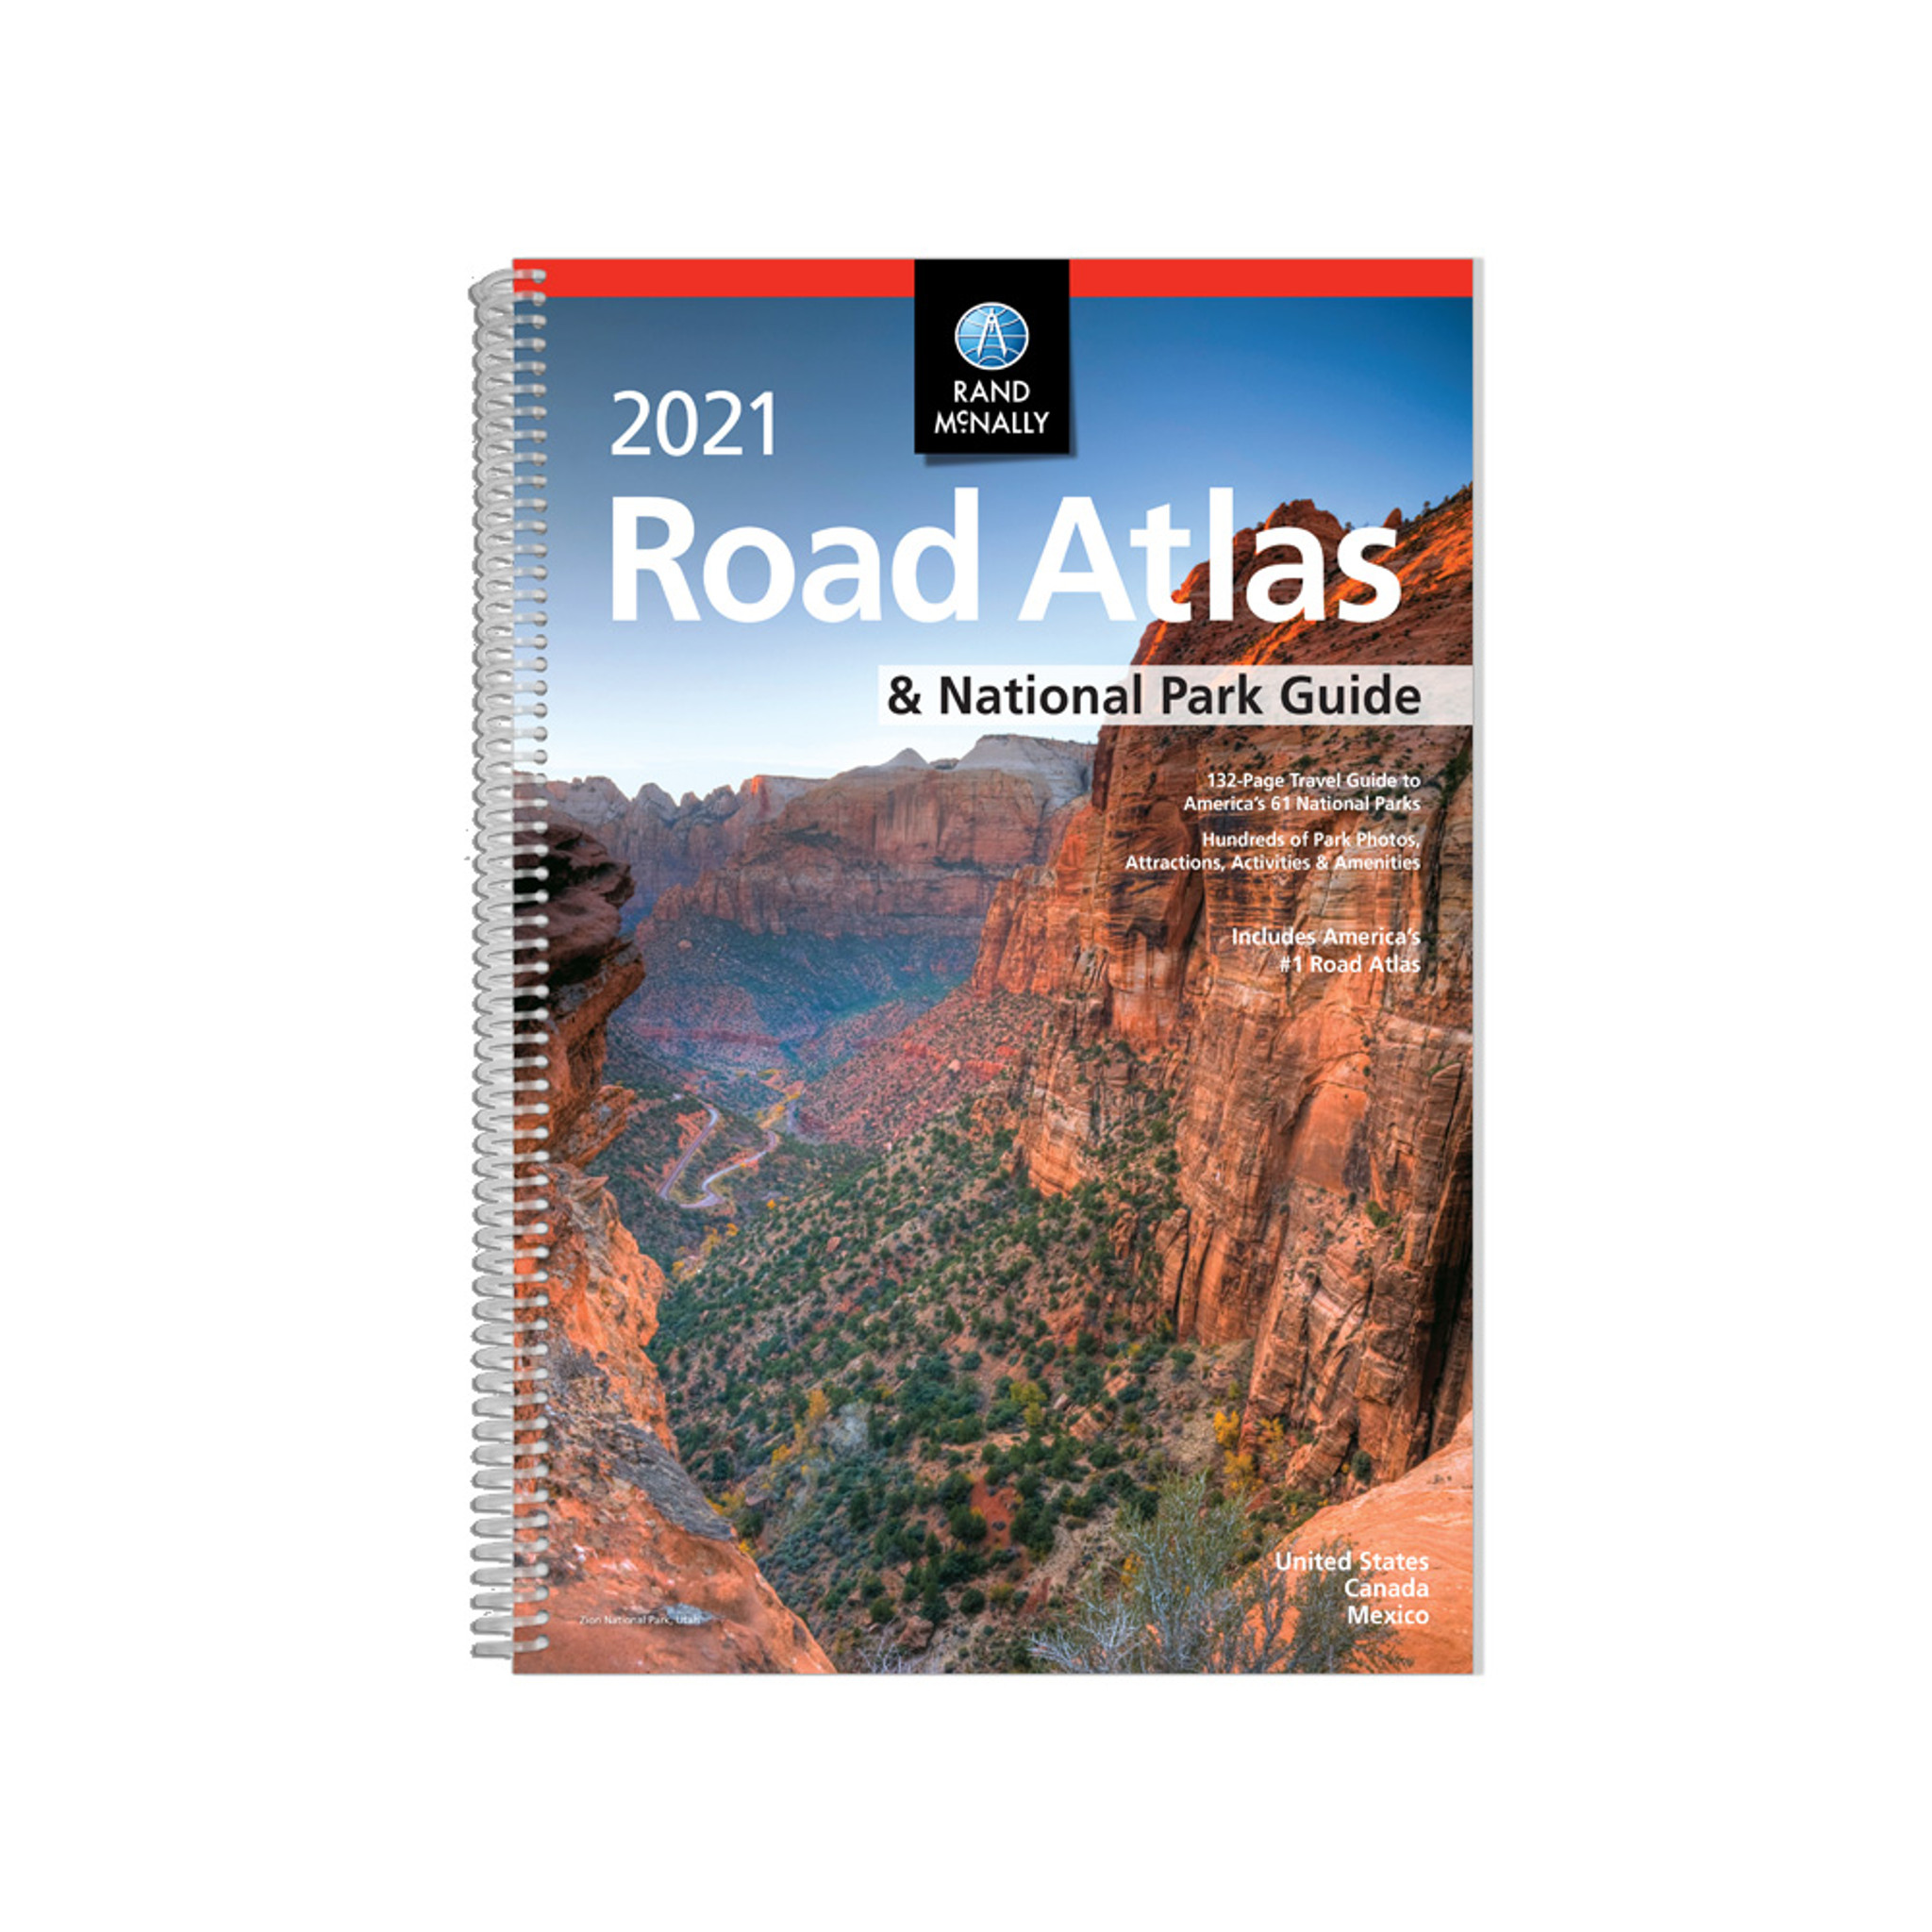 Best Road Atlas 2021 Rand McNally 2021 Road Atlas and National Parks Guide